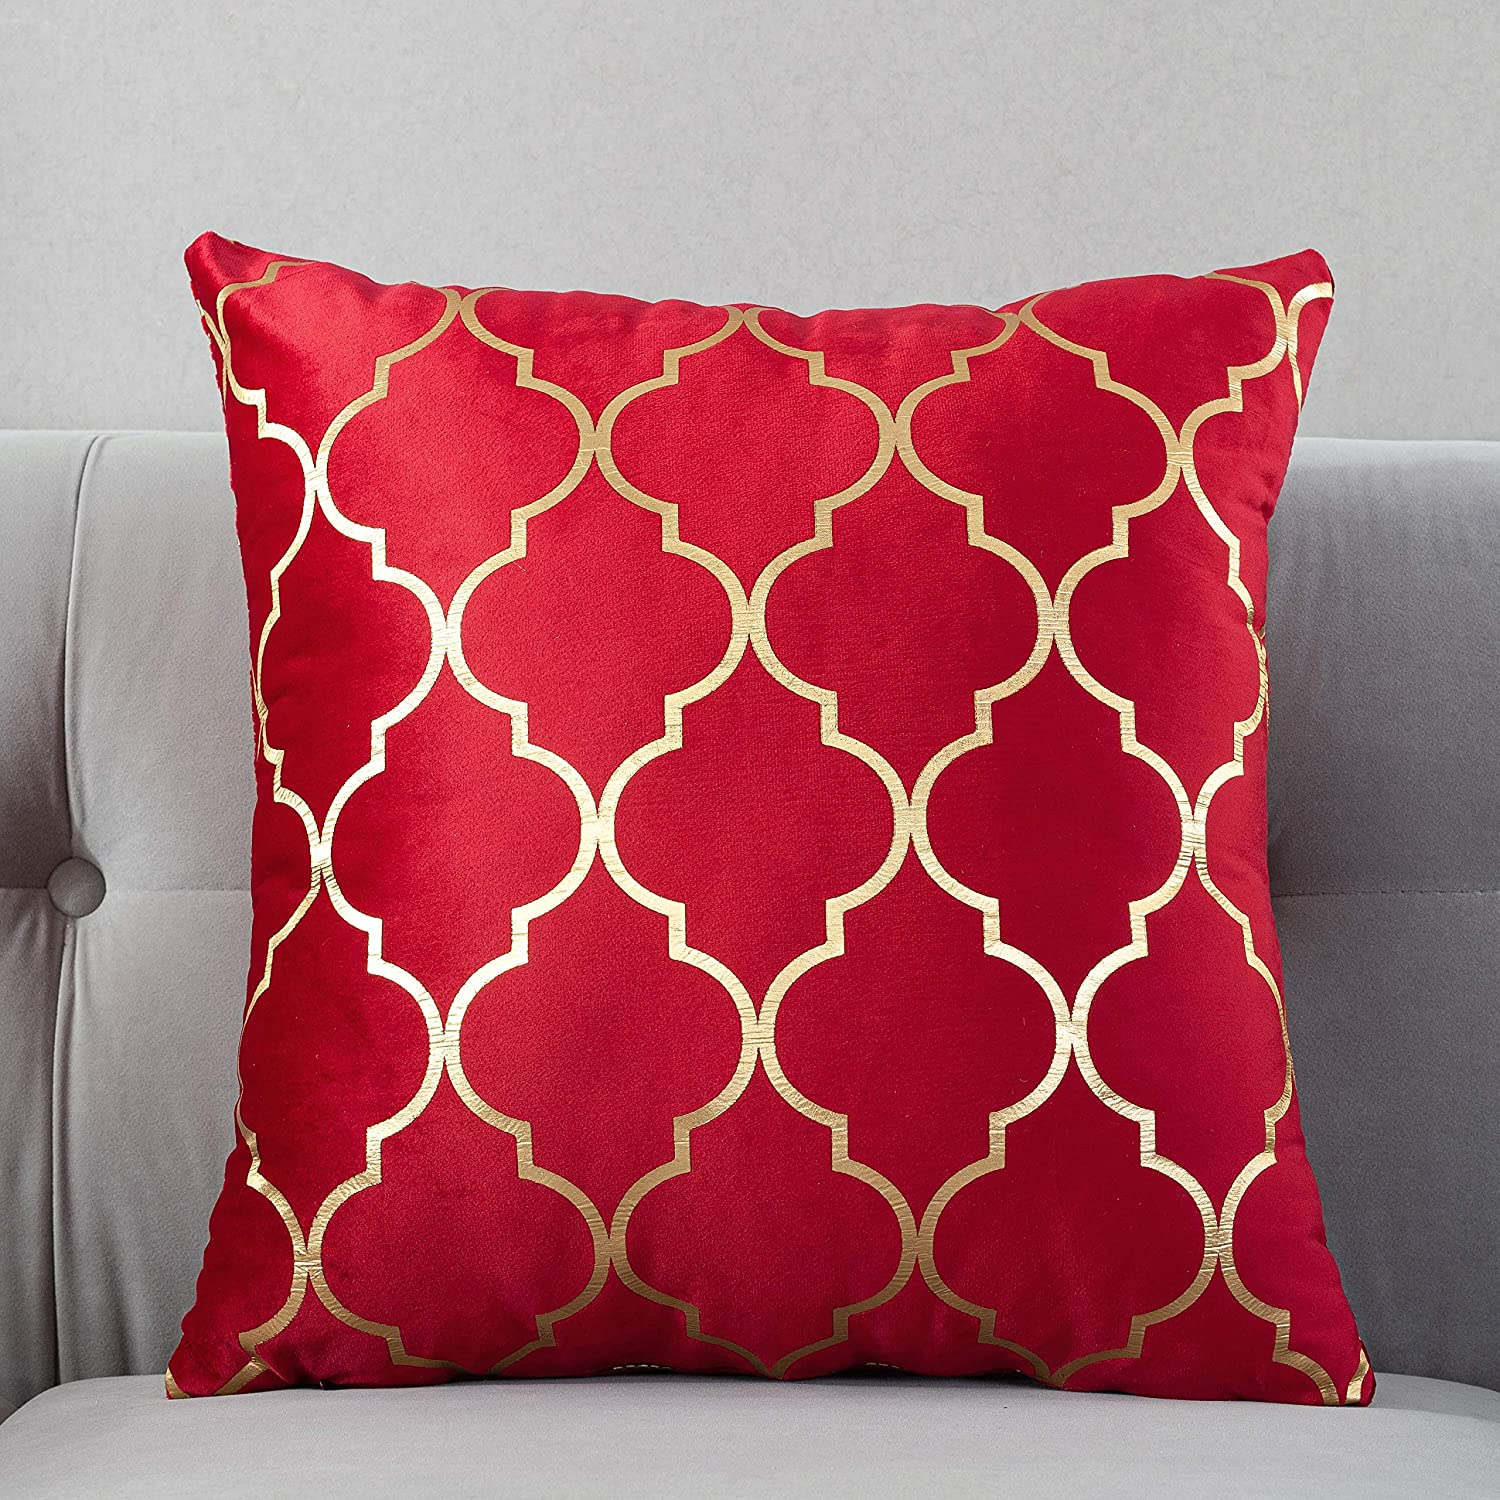 TAOSON Pack of 2,Moroccan Quatrefoil Geometric Bronzing Printed Cozy Soft Throw Pillow Cases Cushion Covers Shells for Sofa Couch Bed Home Decoration 18 x 18 Inches, Red and Gold